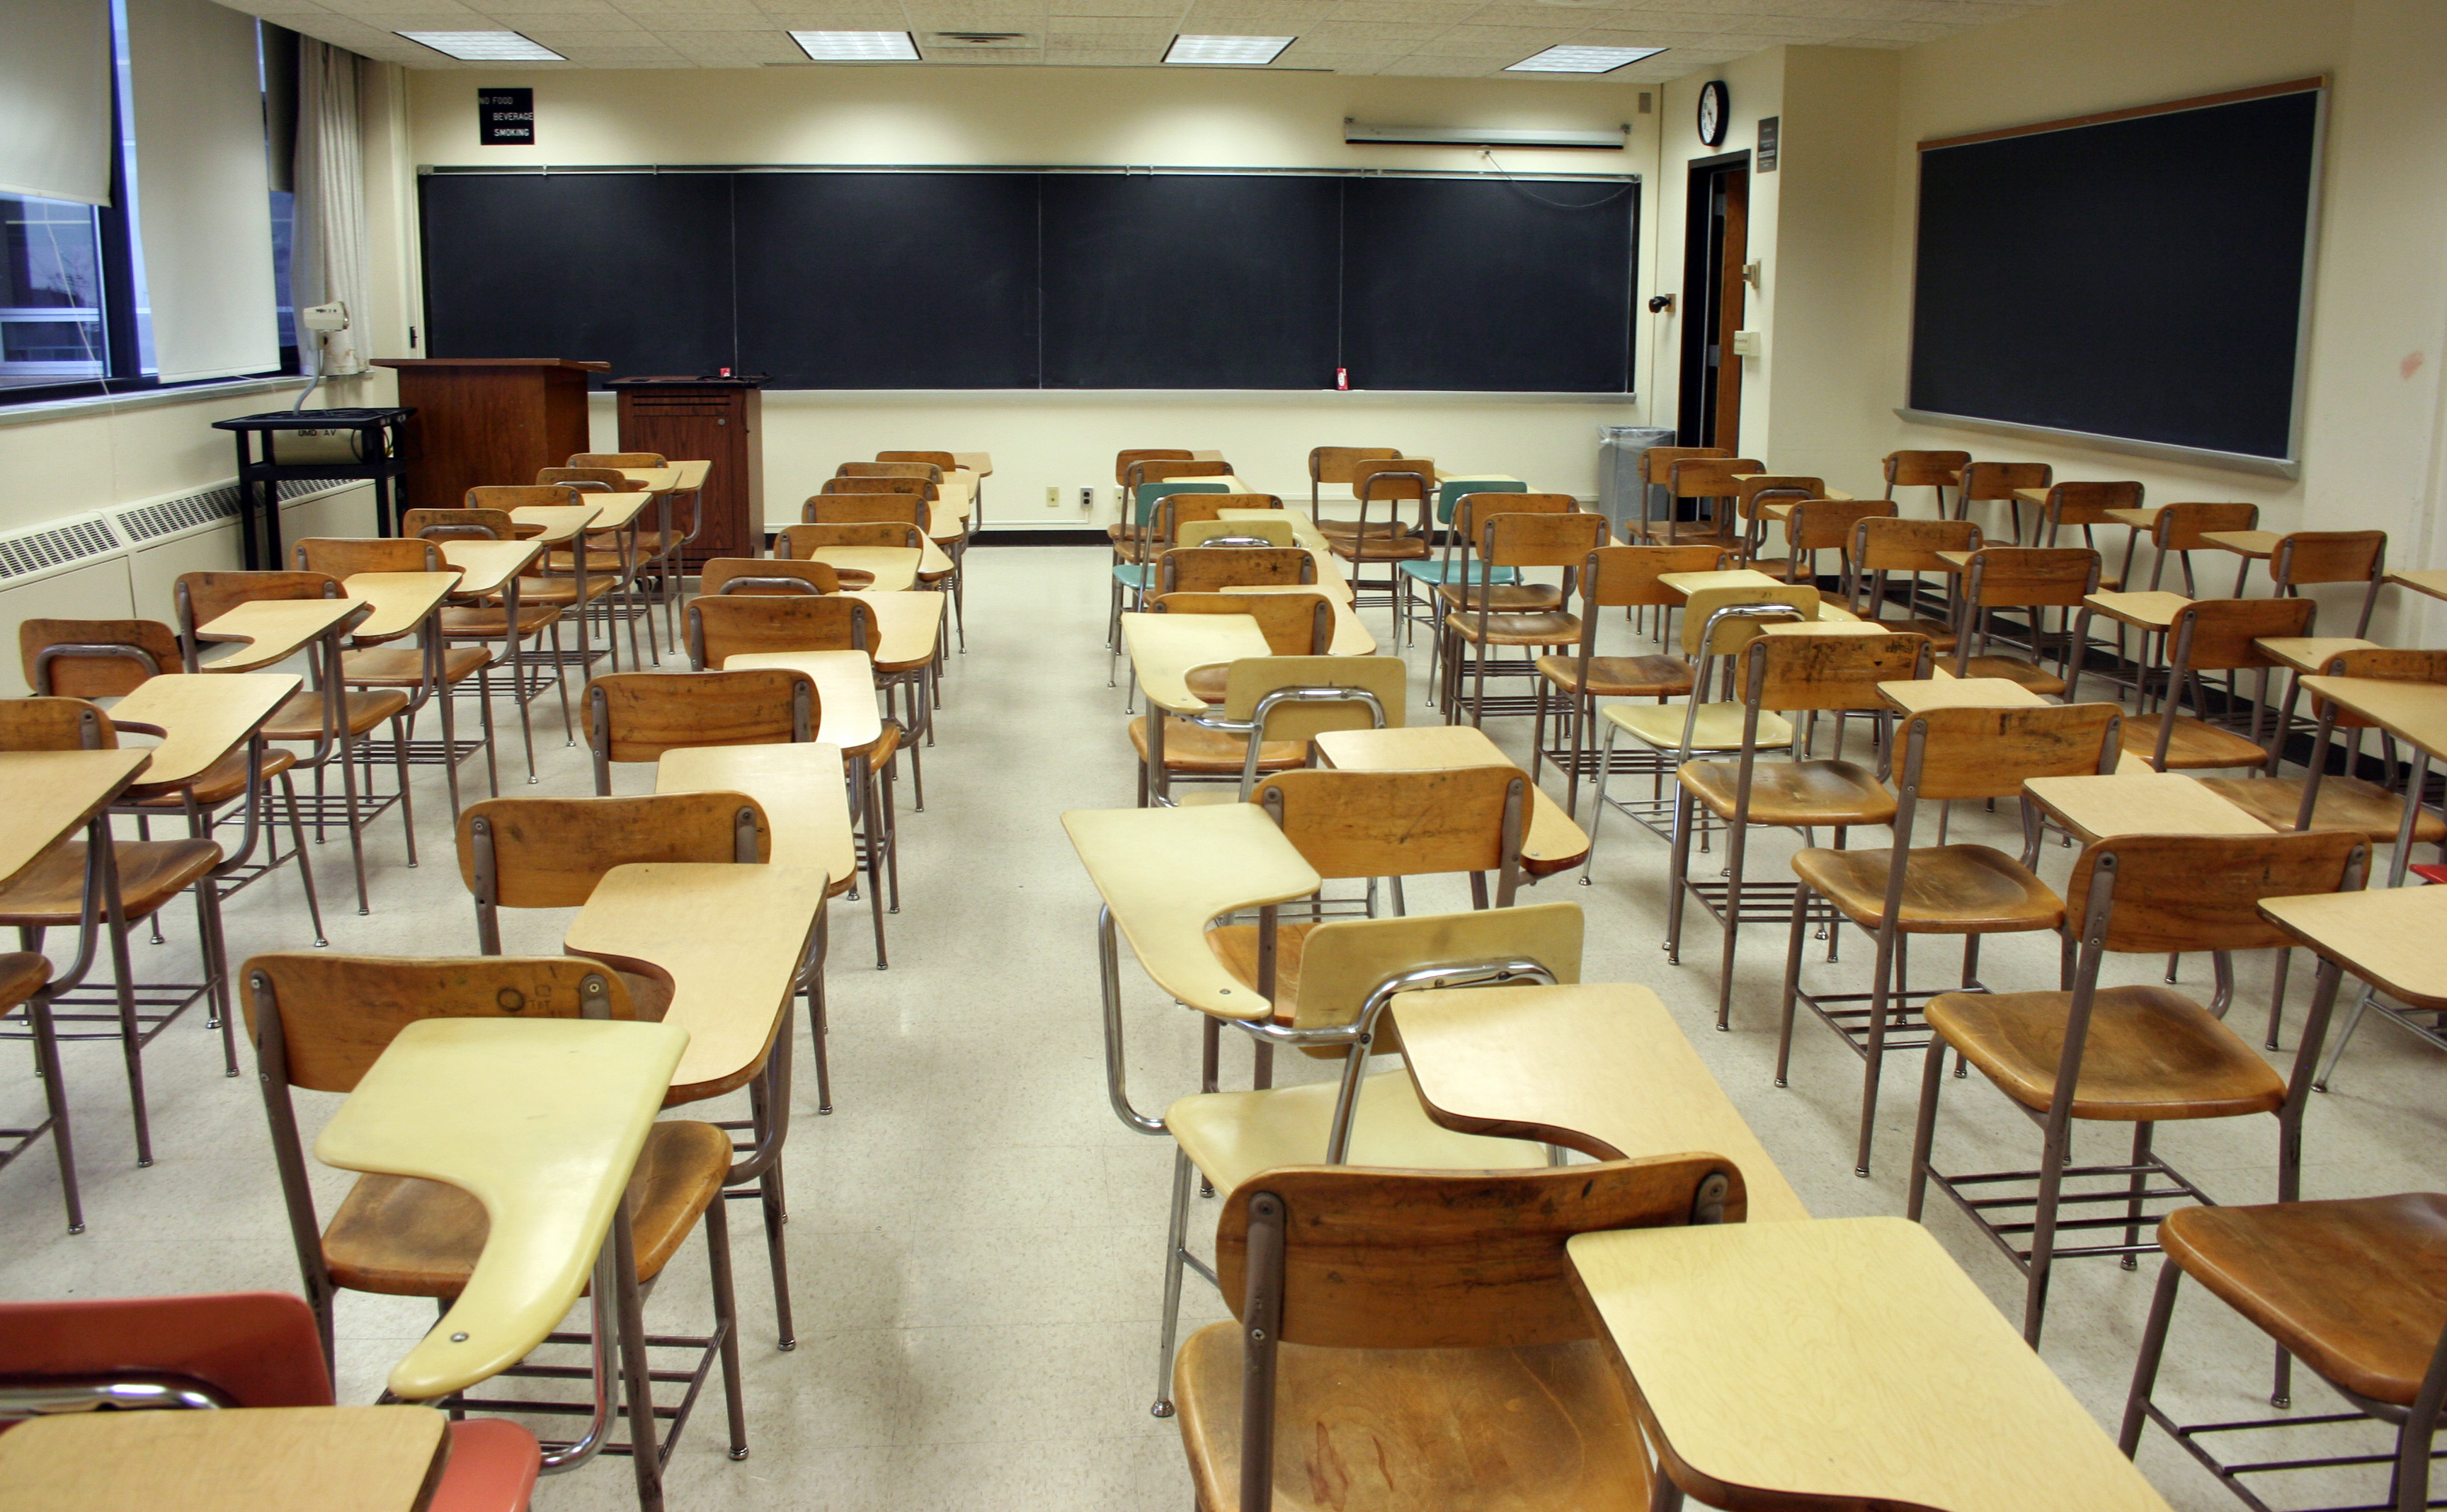 Legal Group Reports 'Dramatic Increase' in Hostility Toward Christian Students in Public Schools